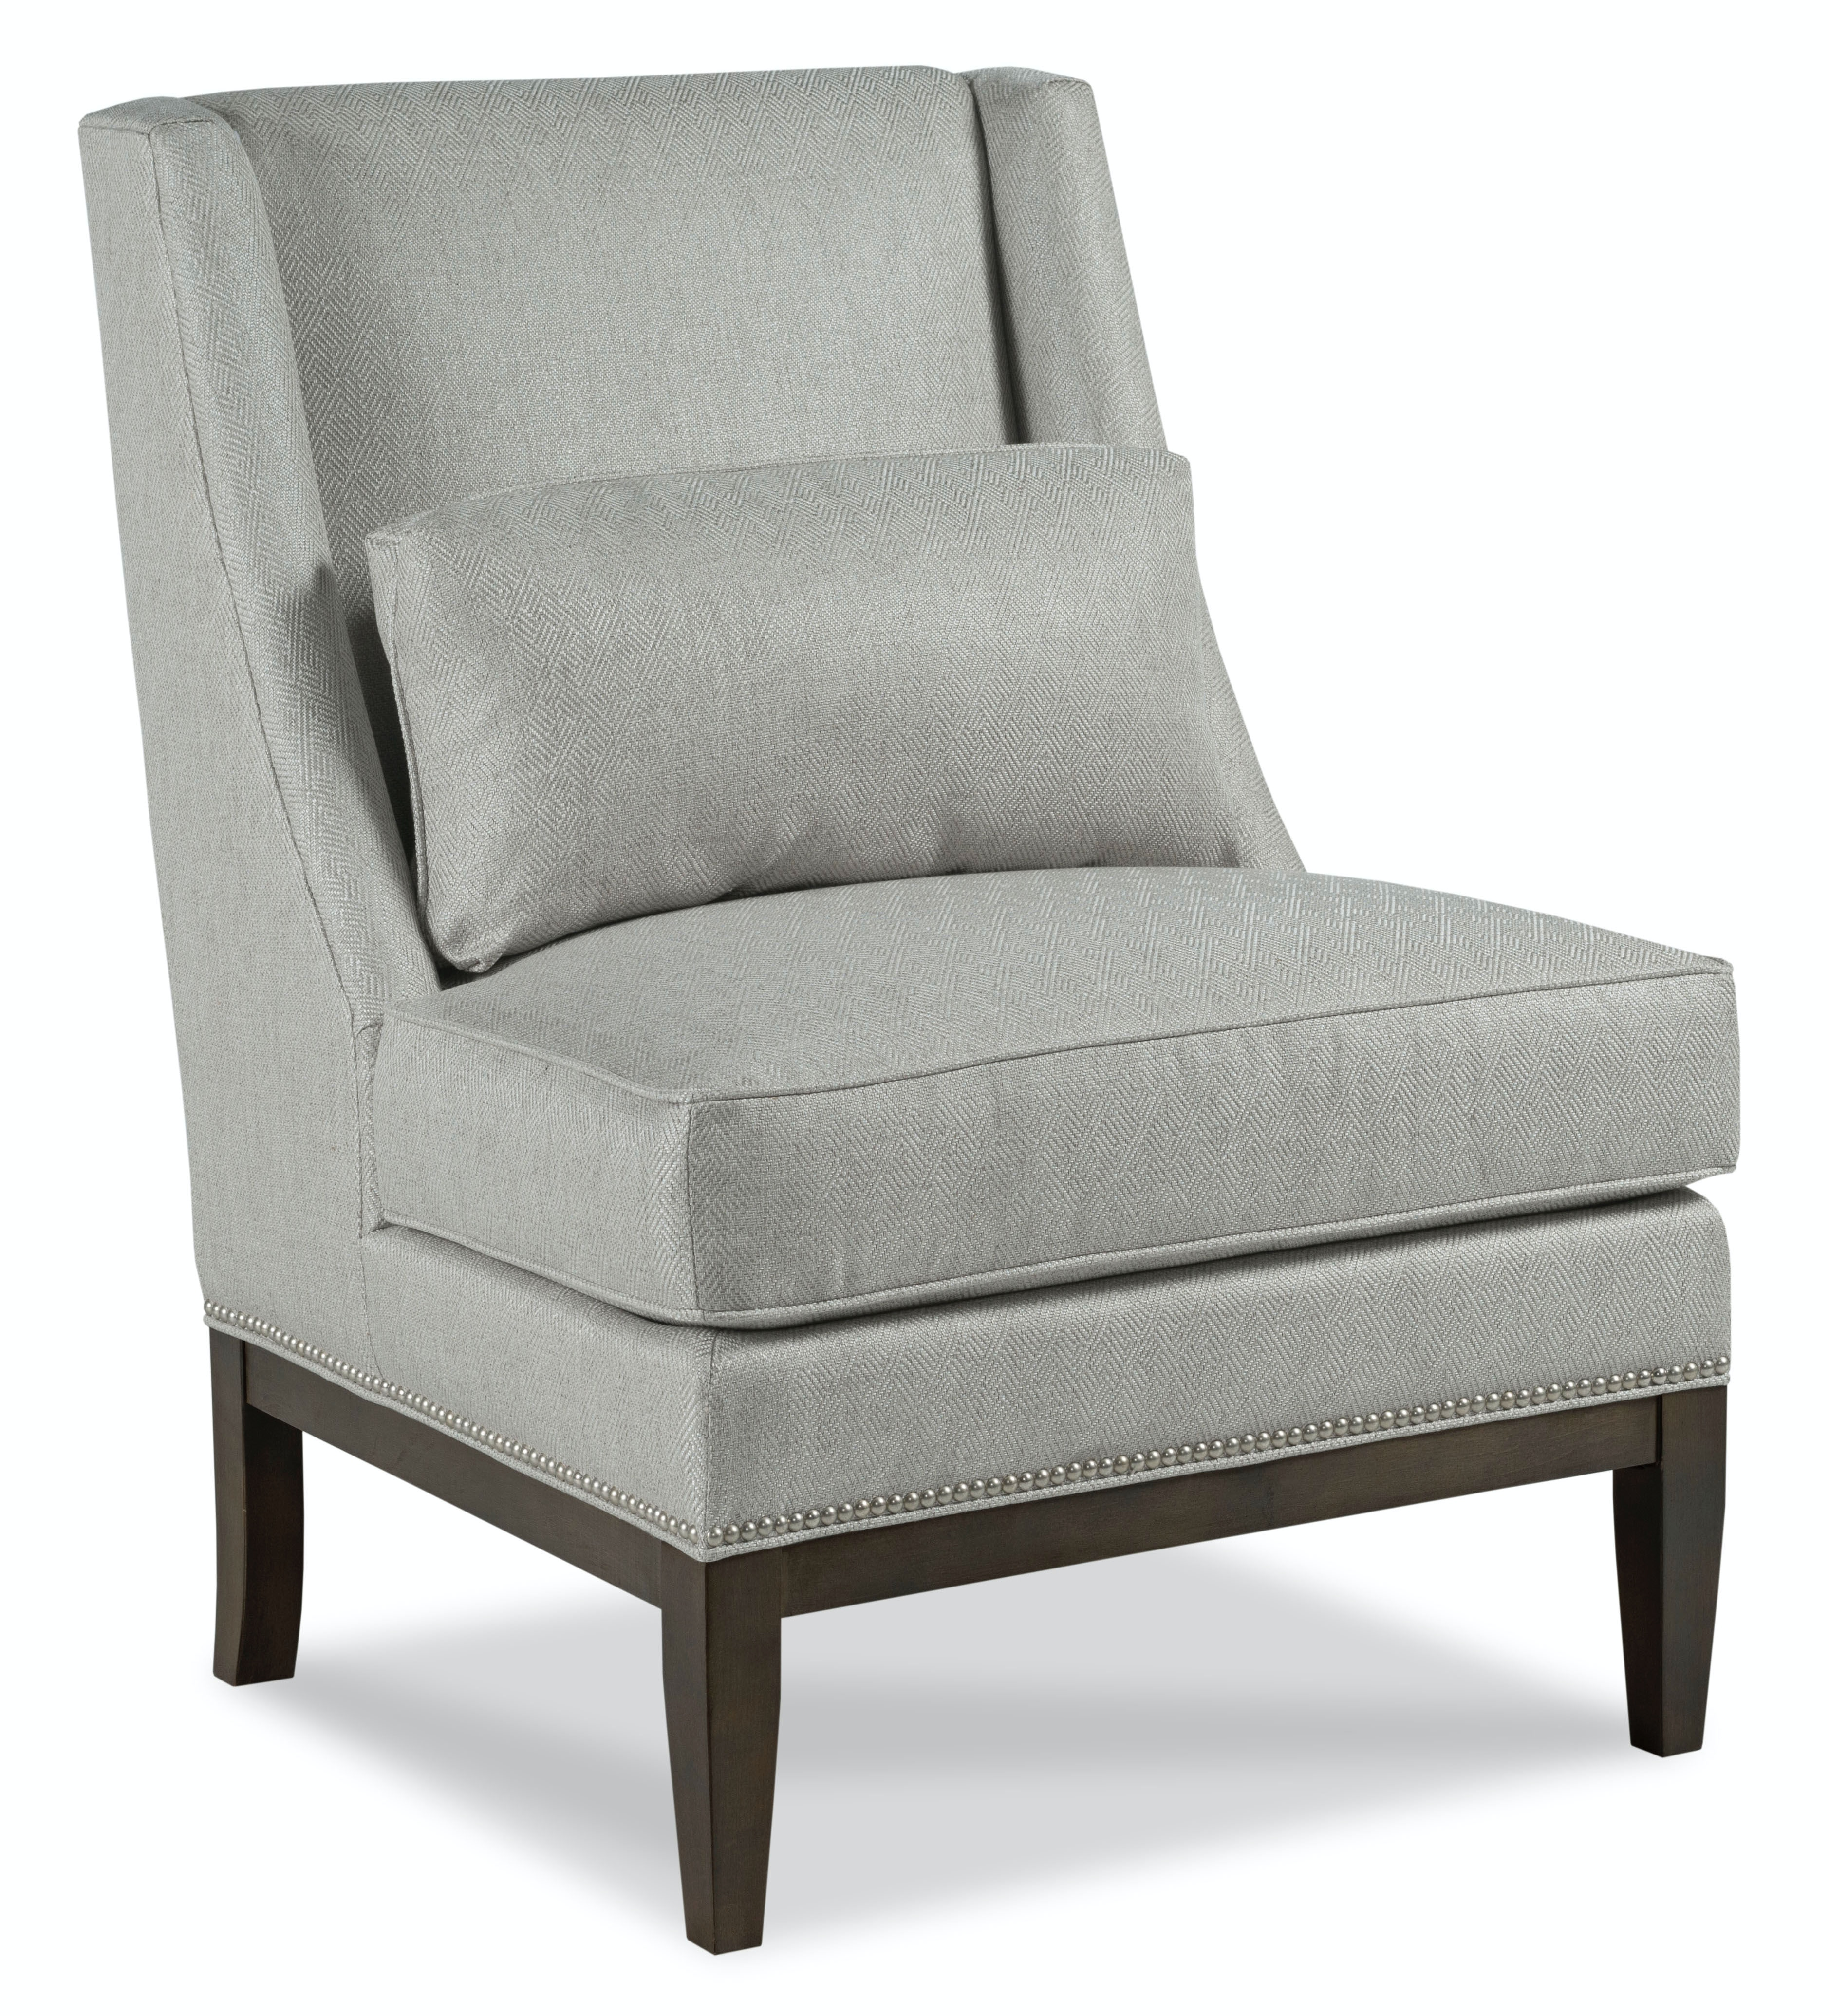 6033 01. Justin Lounge Chair